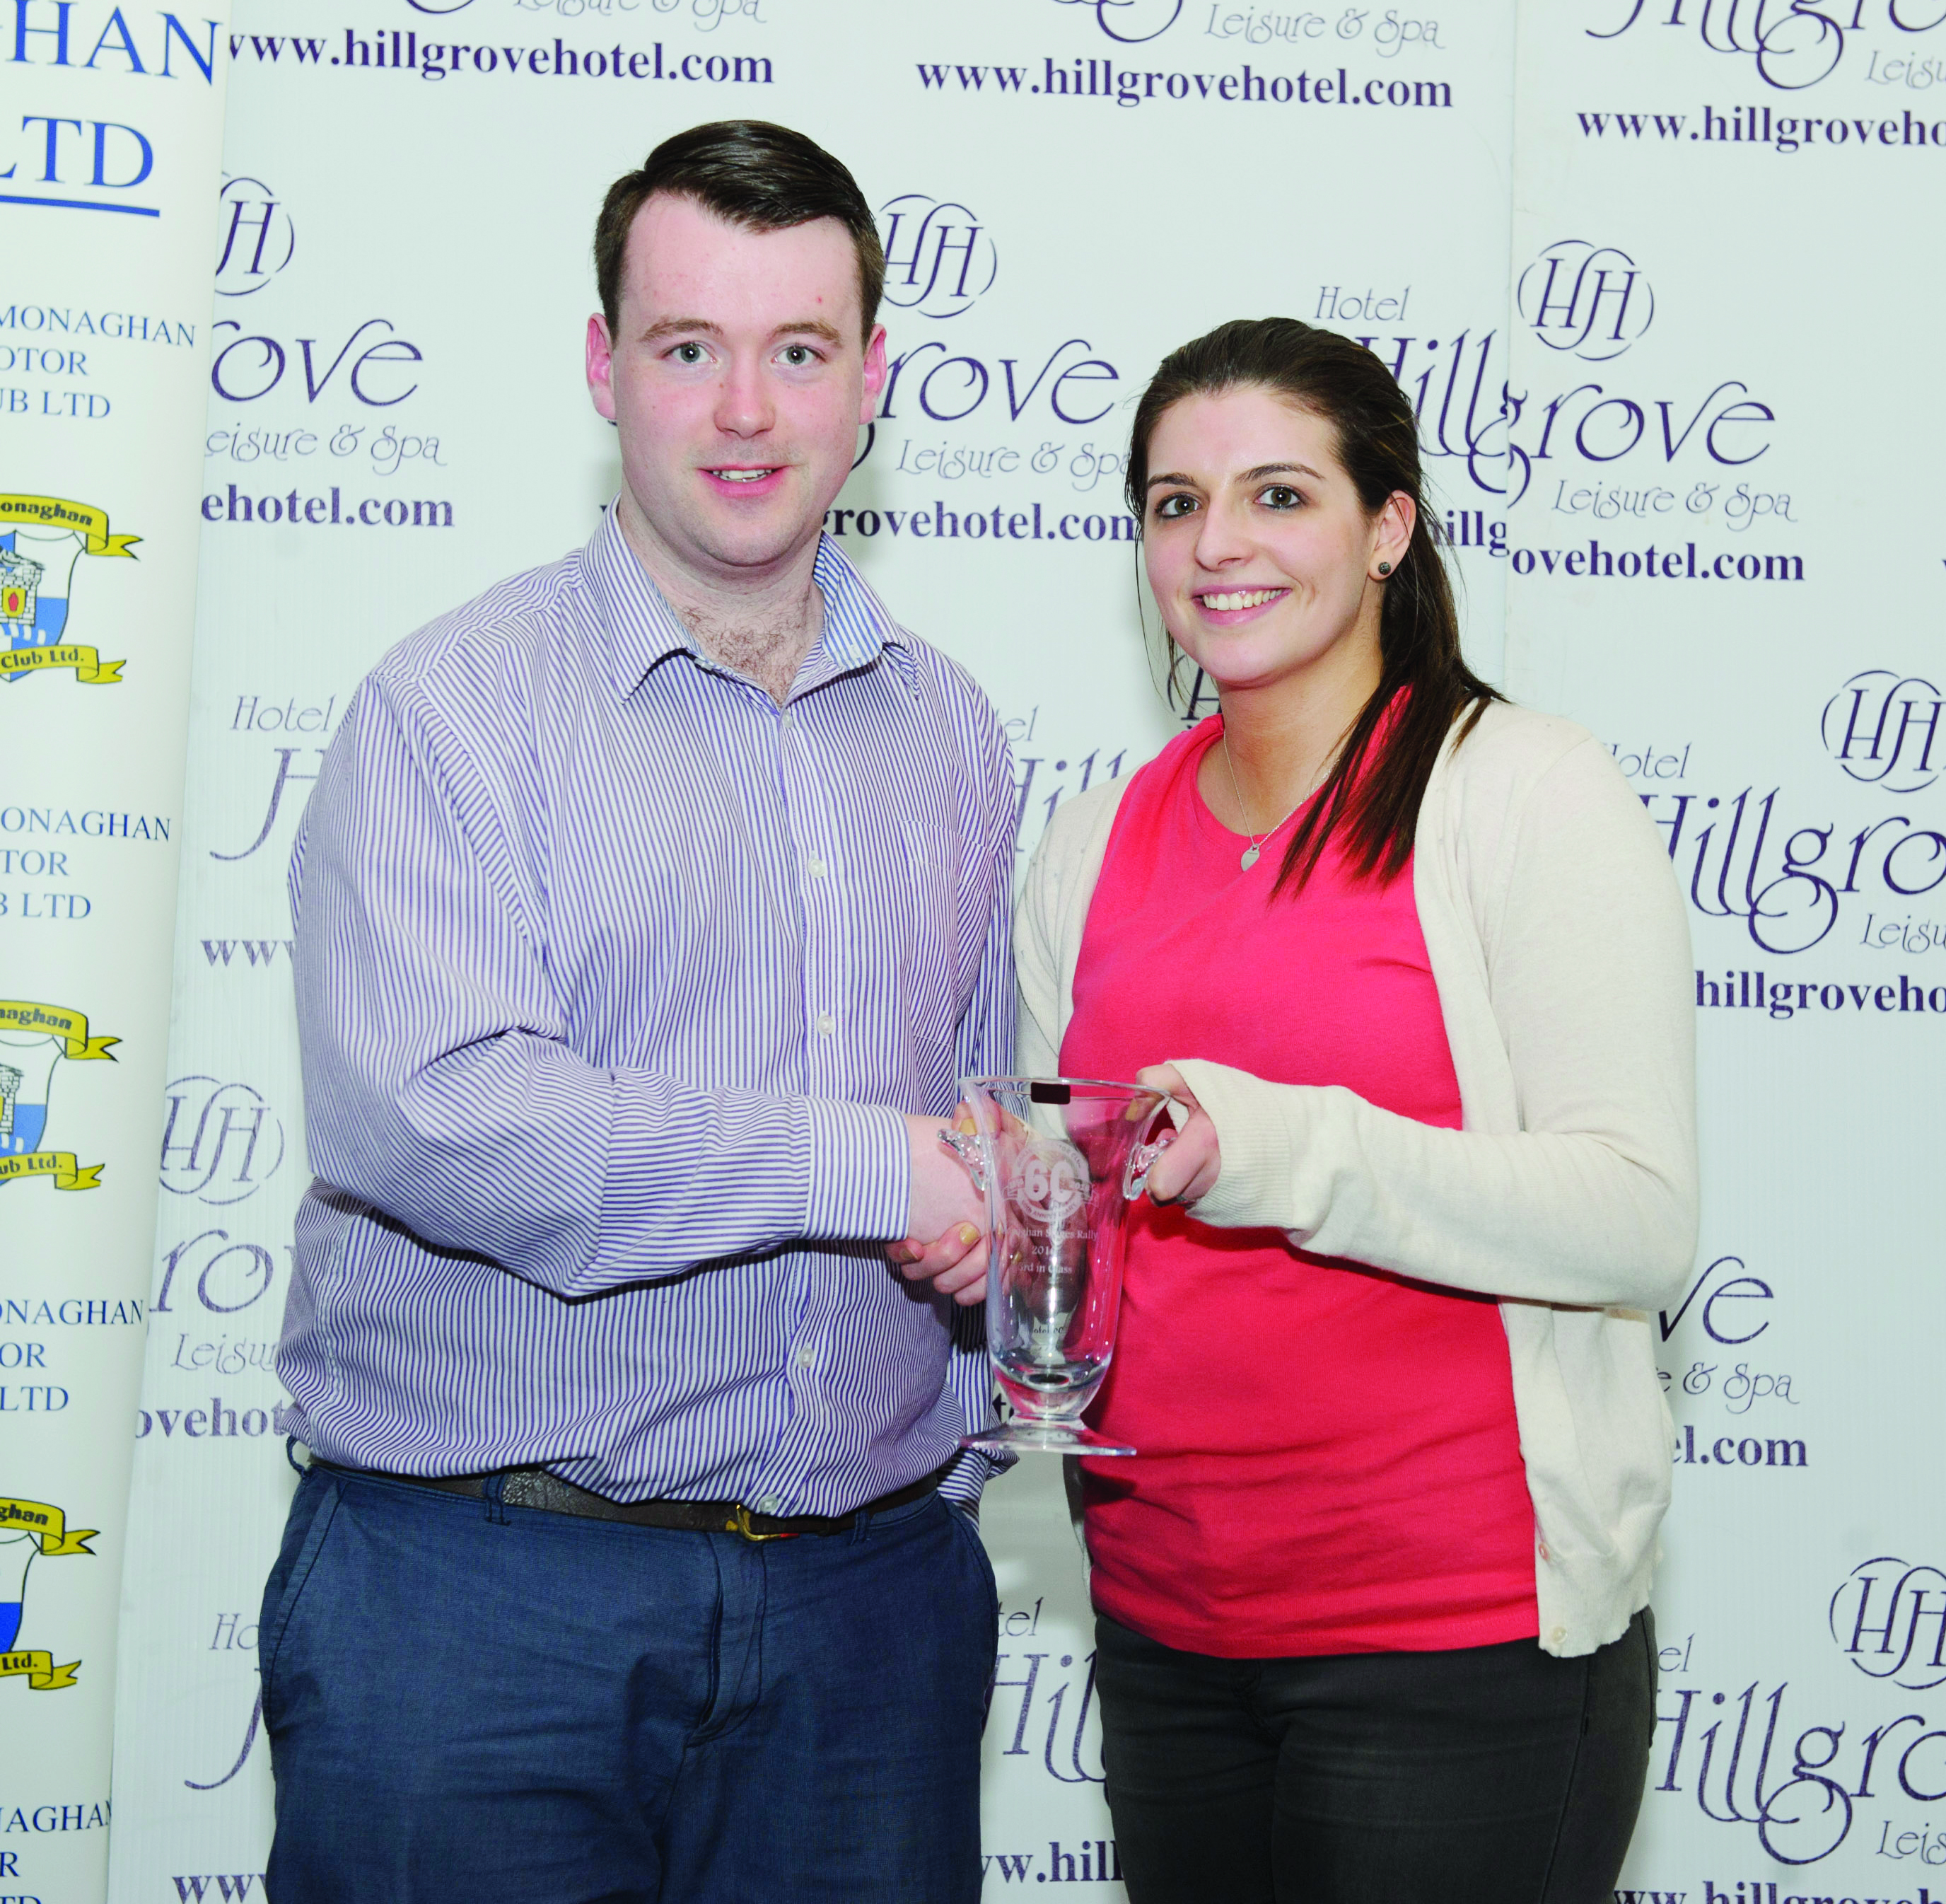 Brenda Flynn making a presentation to Fintan Clerkin, one of the stage commanders for the The Hillgrove Hotel Monaghan Stages Rally 2016.